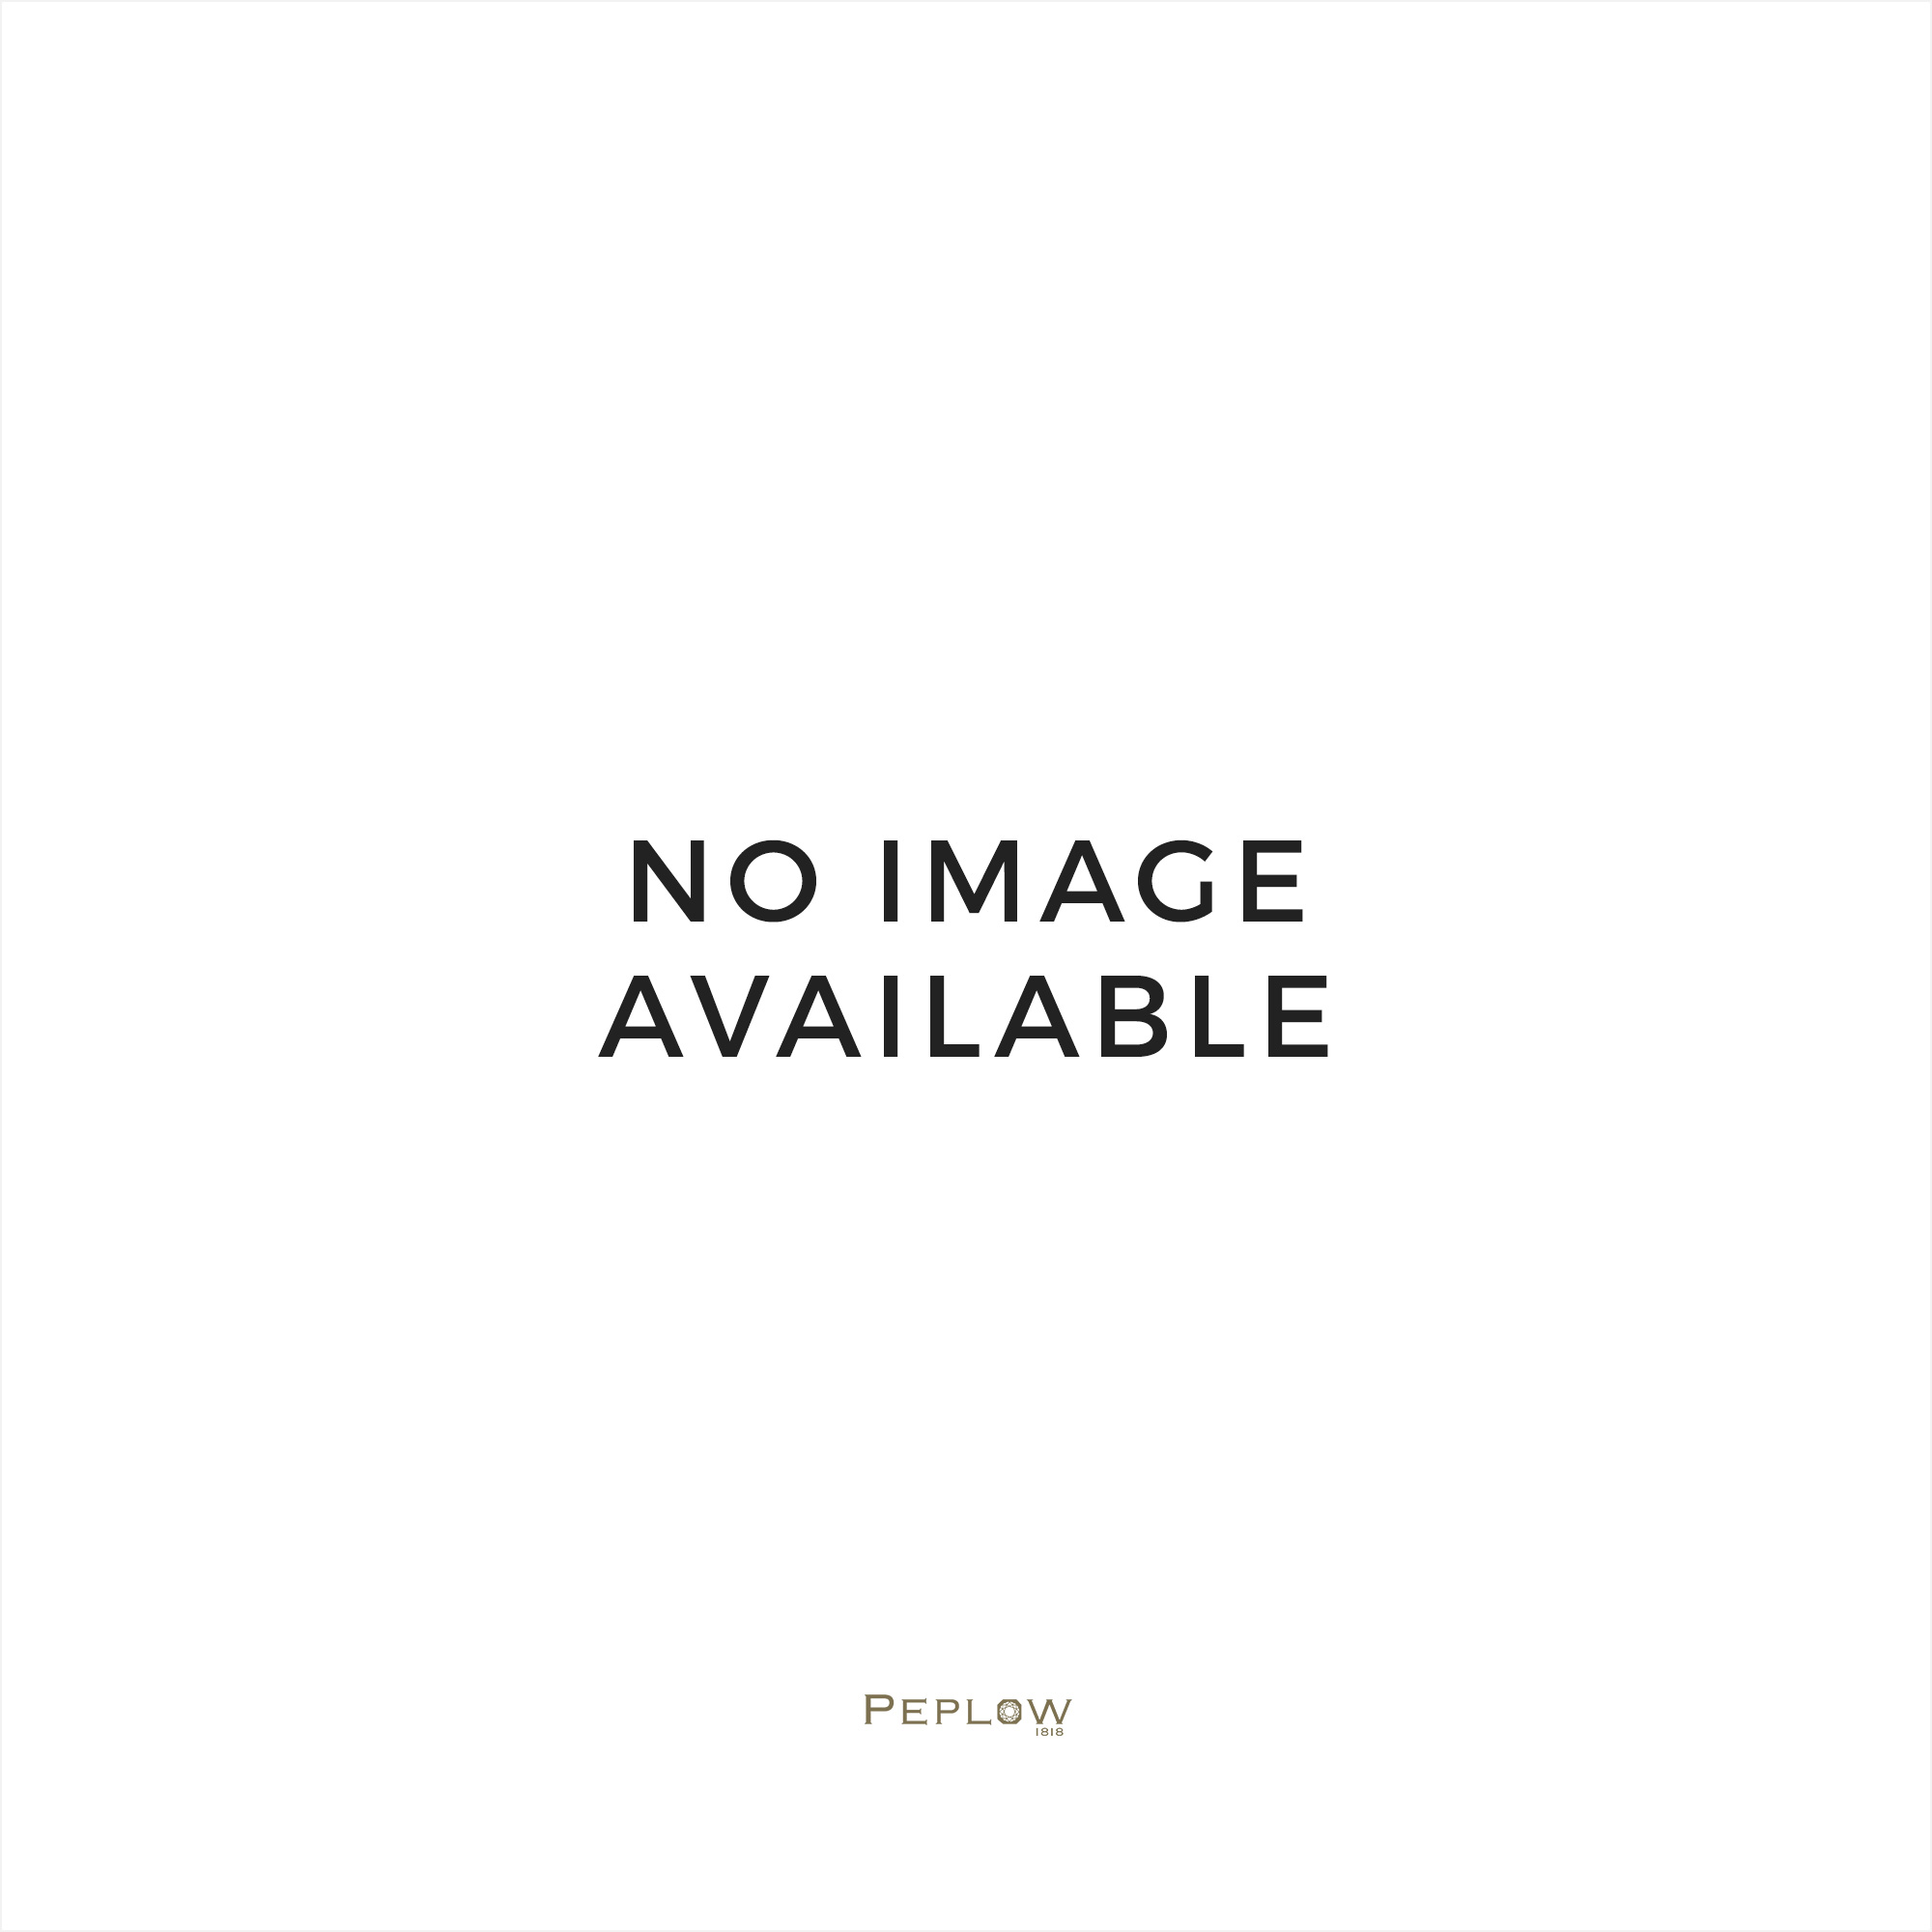 Citizen Watches Citizen Ladies Eco-Drive Diamond Collection Watch